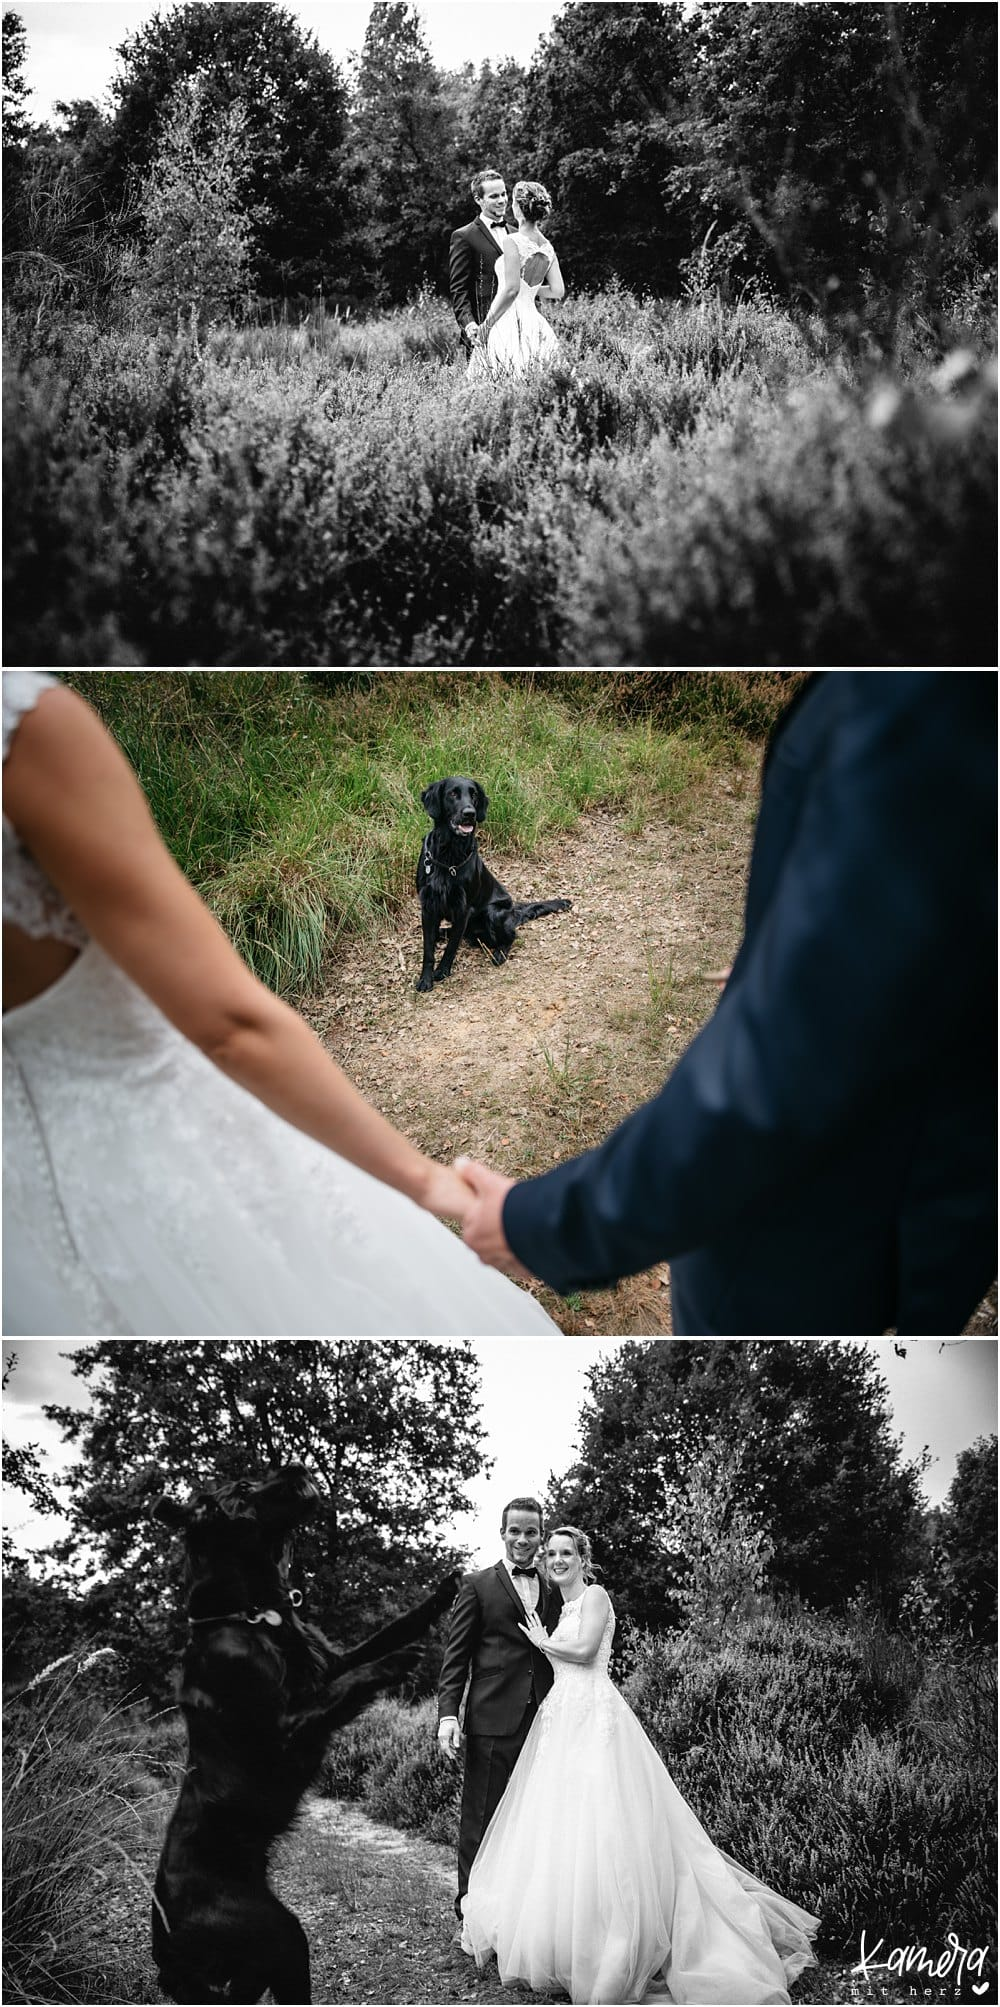 After Wedding Shooting in der Wahner Heide mit Hund